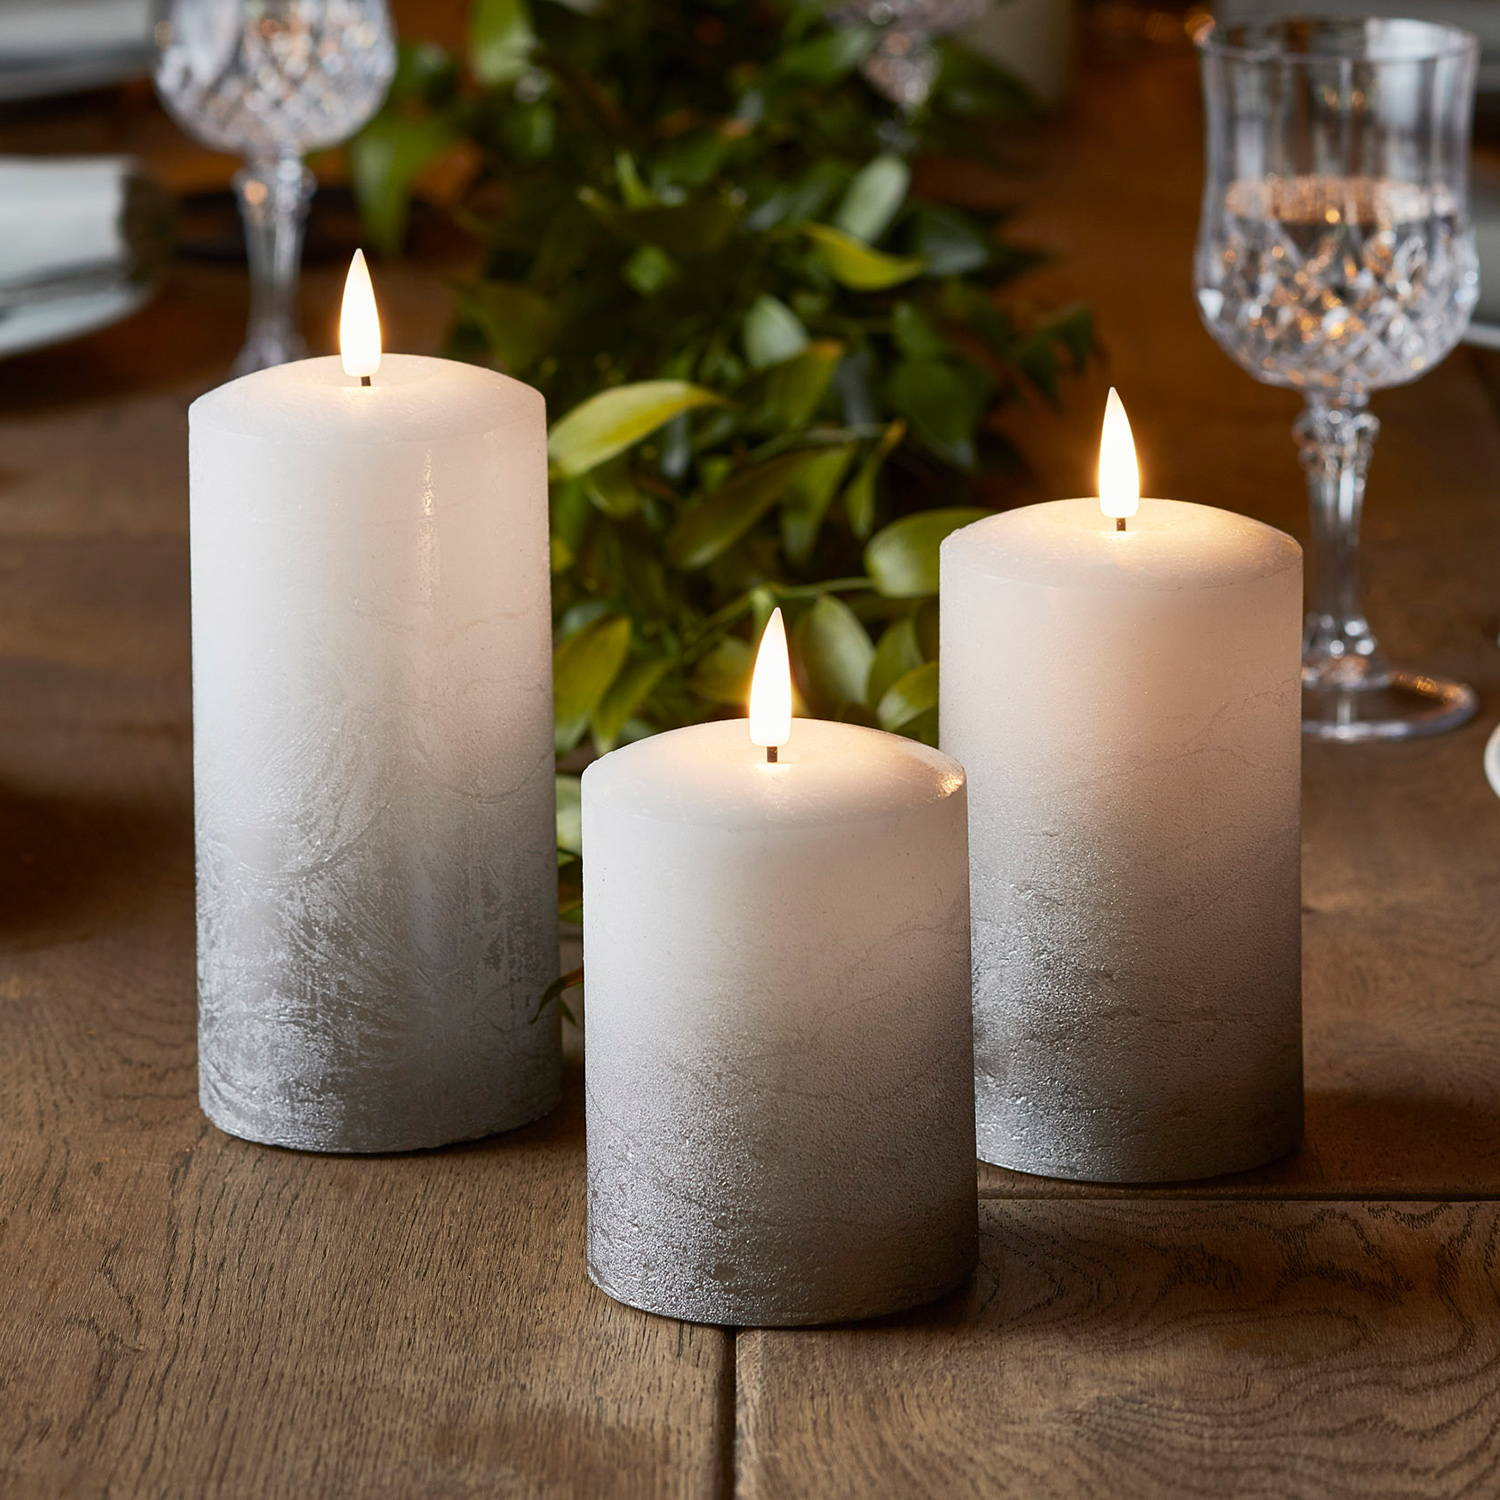 Grey ombre TruGlow candle trio on table